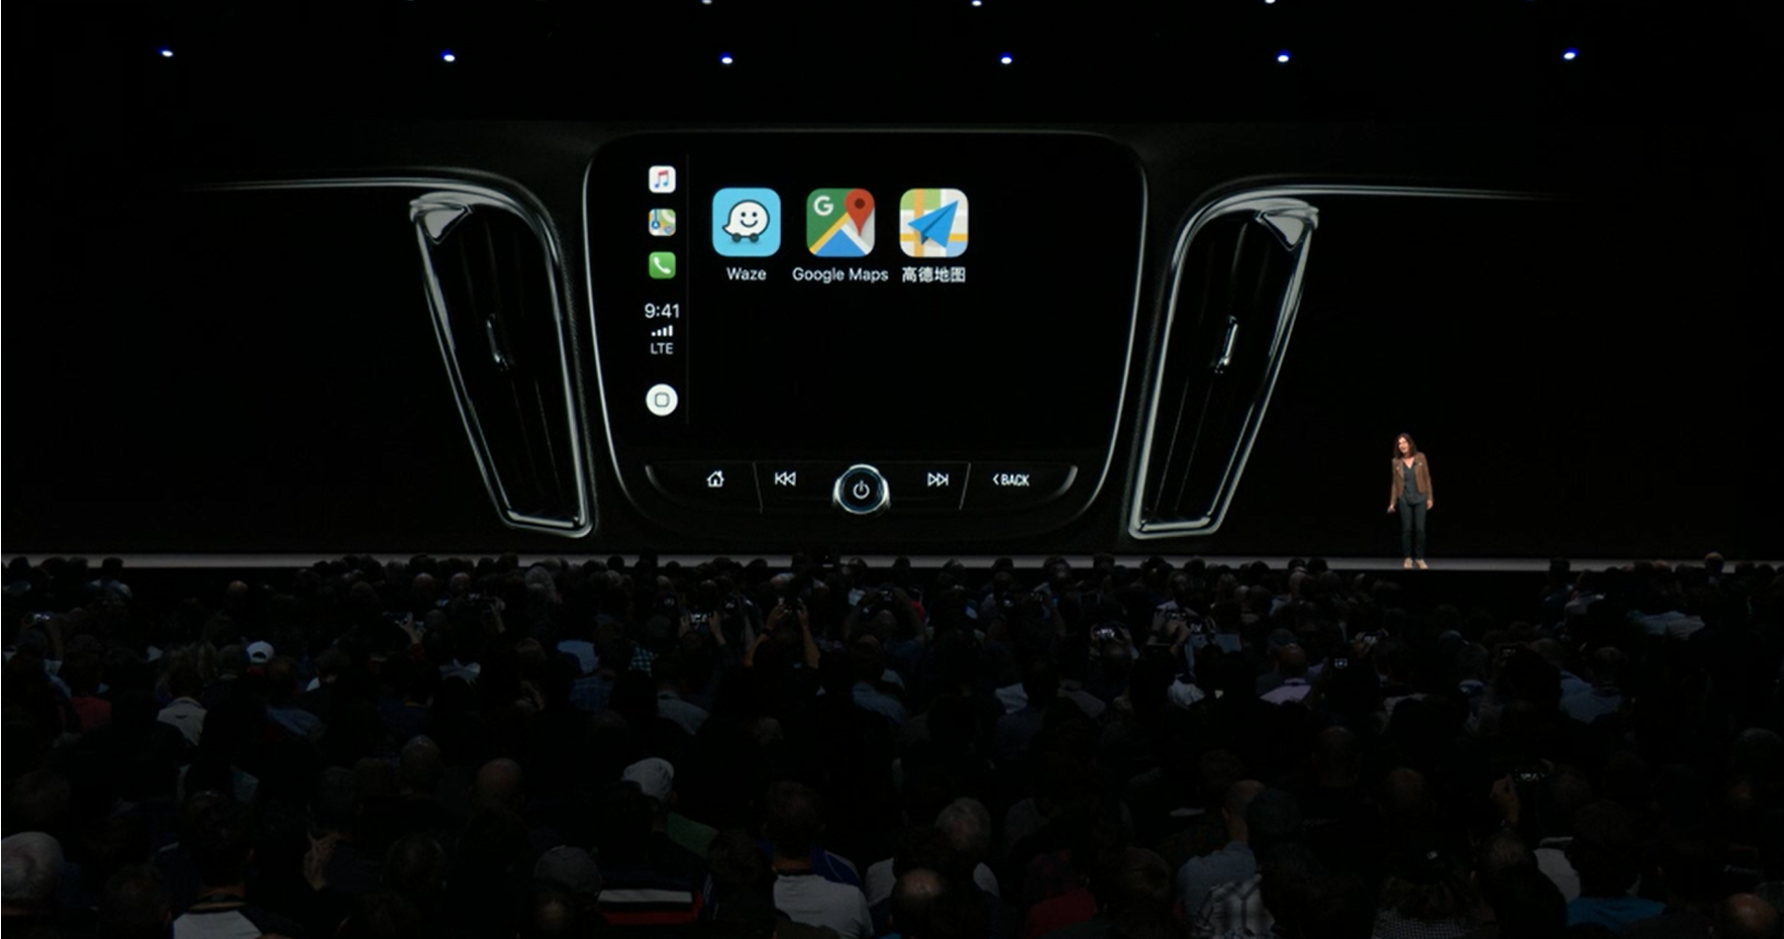 Apple's CarPlay to support 3rd party navigation apps, here comes Waze